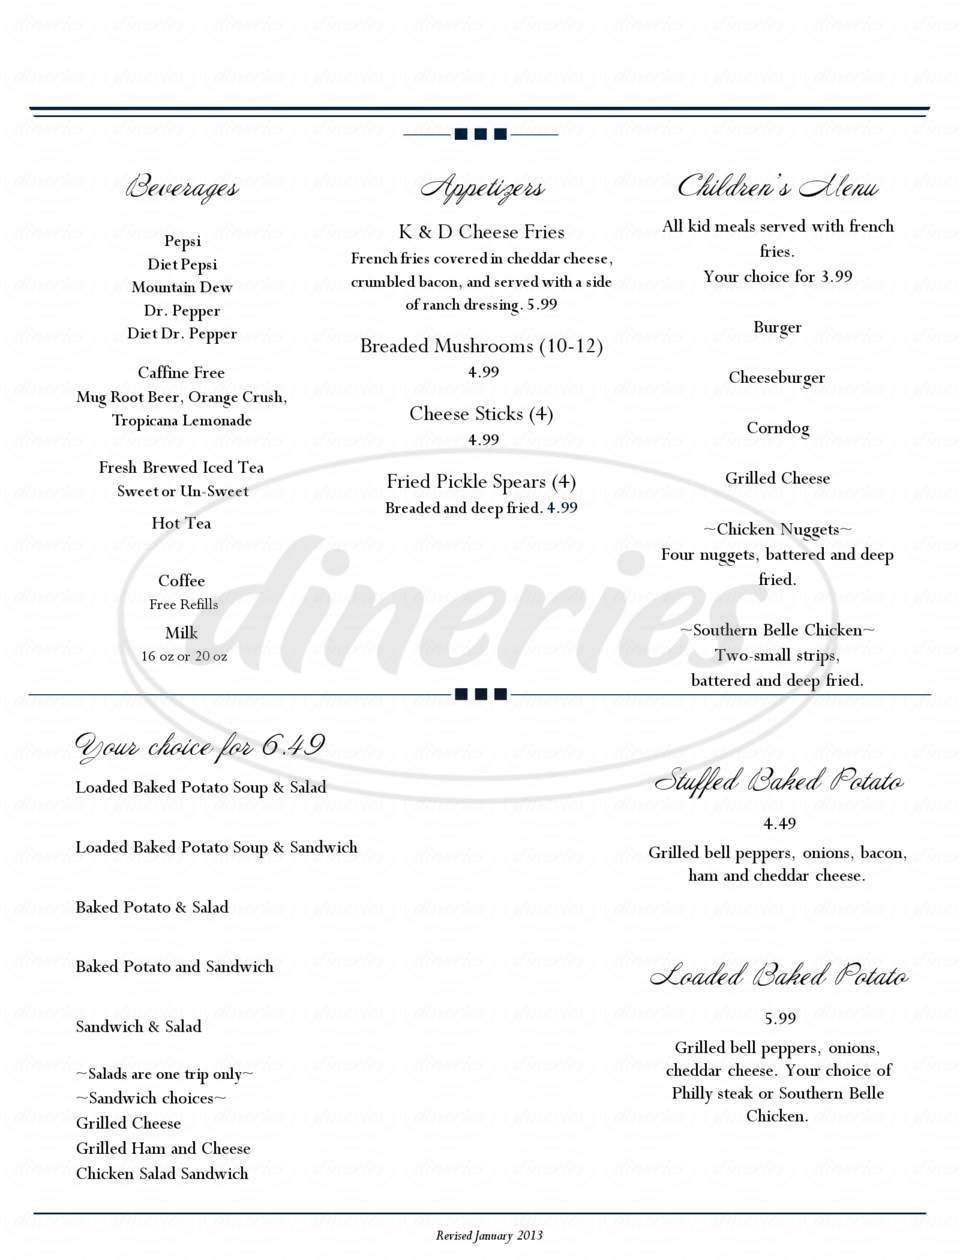 menu for Southern Belle Restaurant